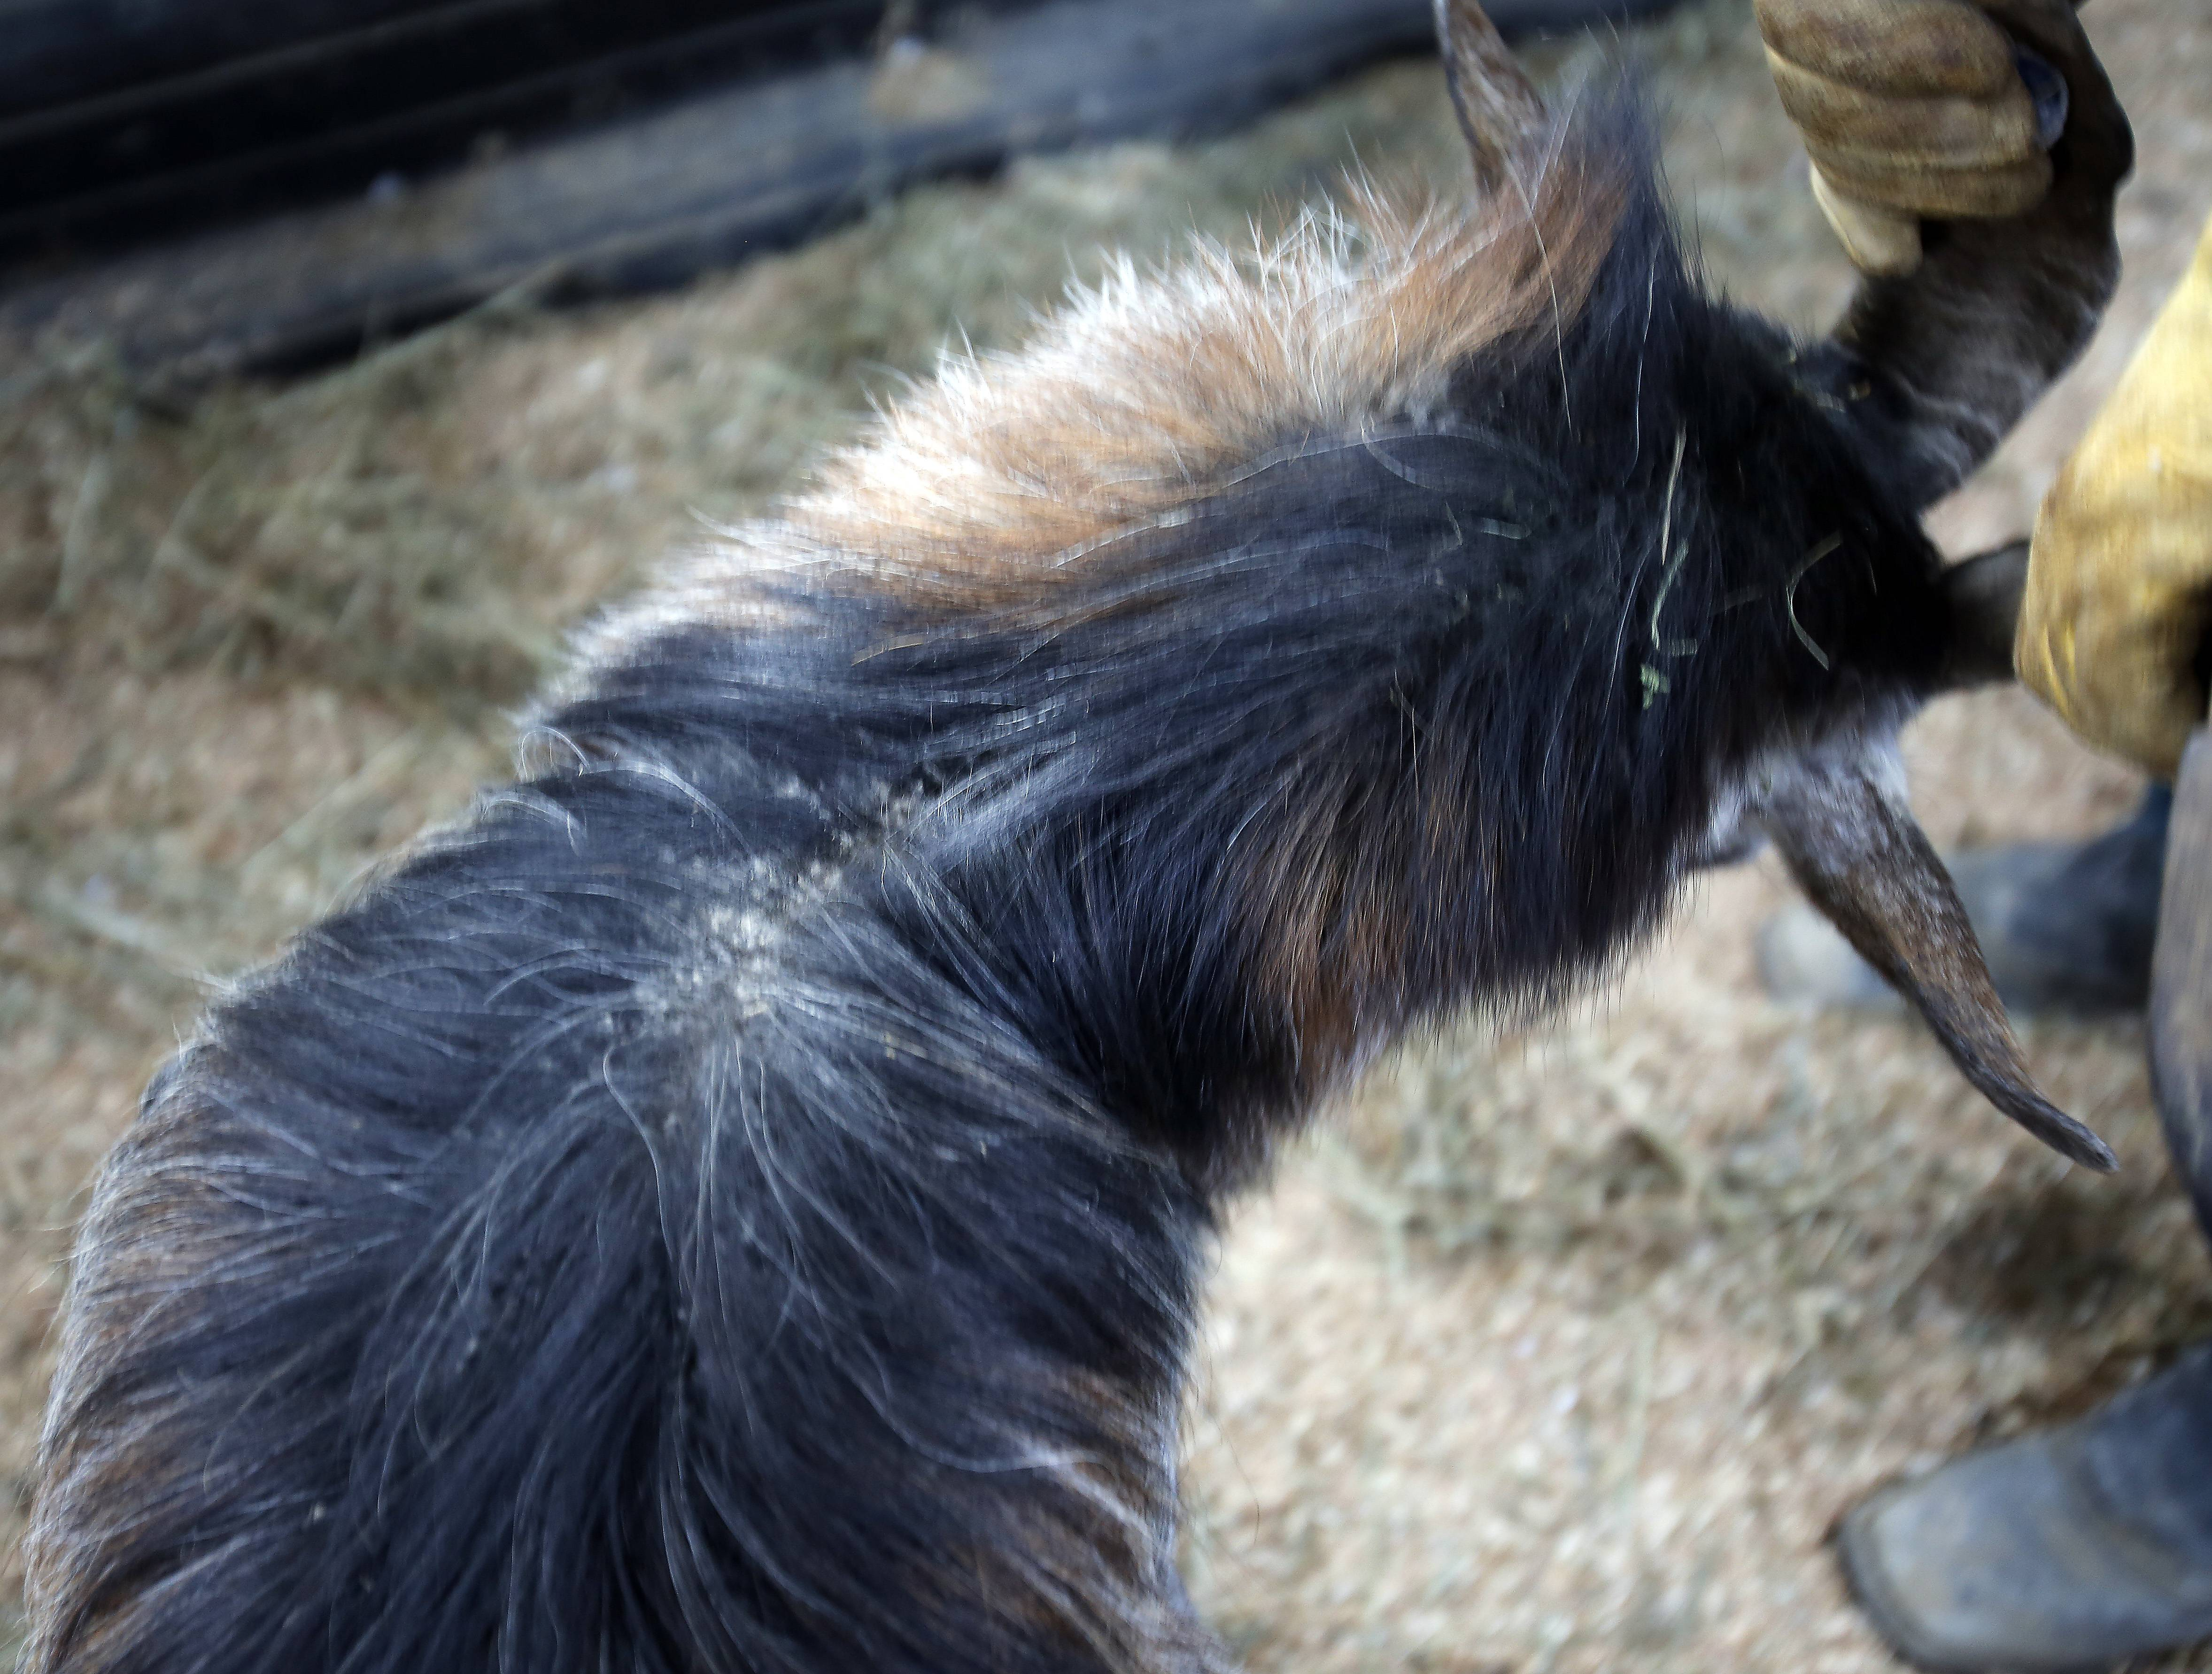 Many of the animals such as this billy goat were showing signs of being sick Tuesday in Hampshire.